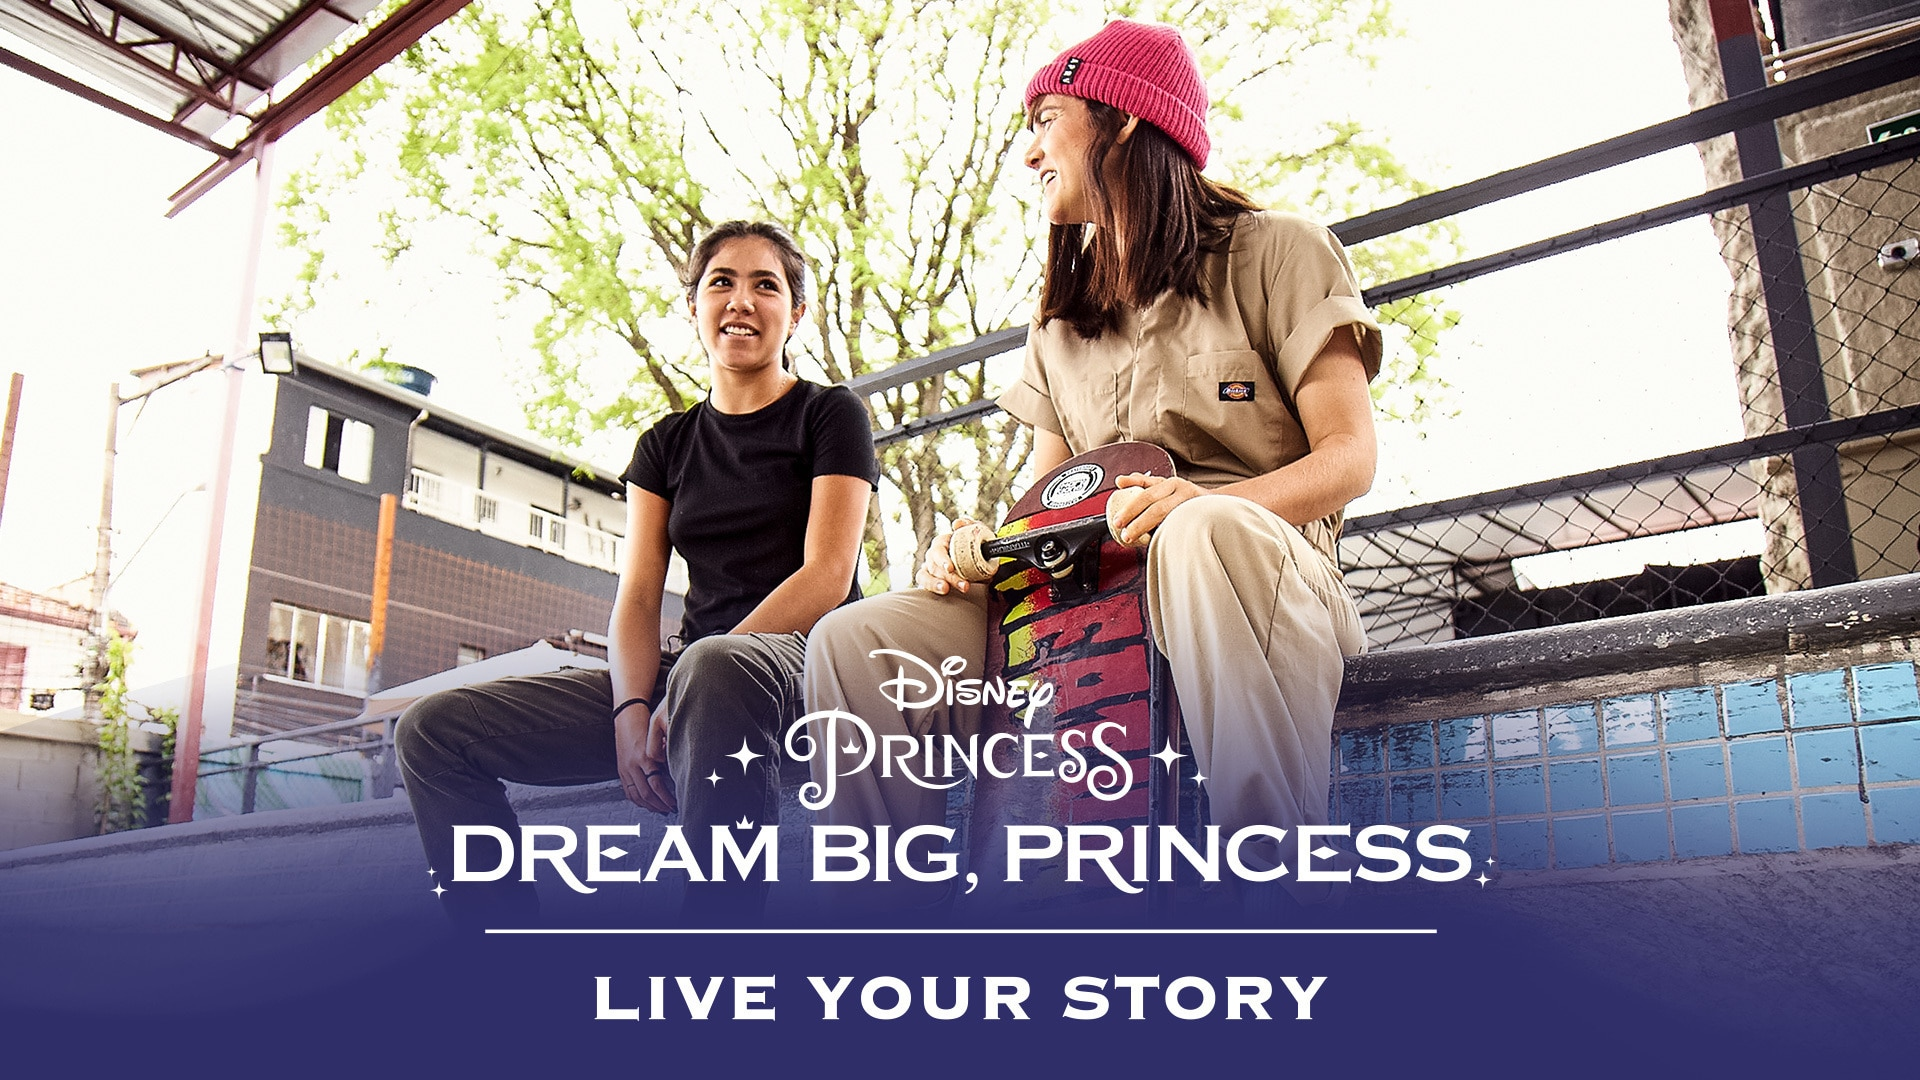 Dream Big, Princess - Luiza Meets Karen Jonz | Disney